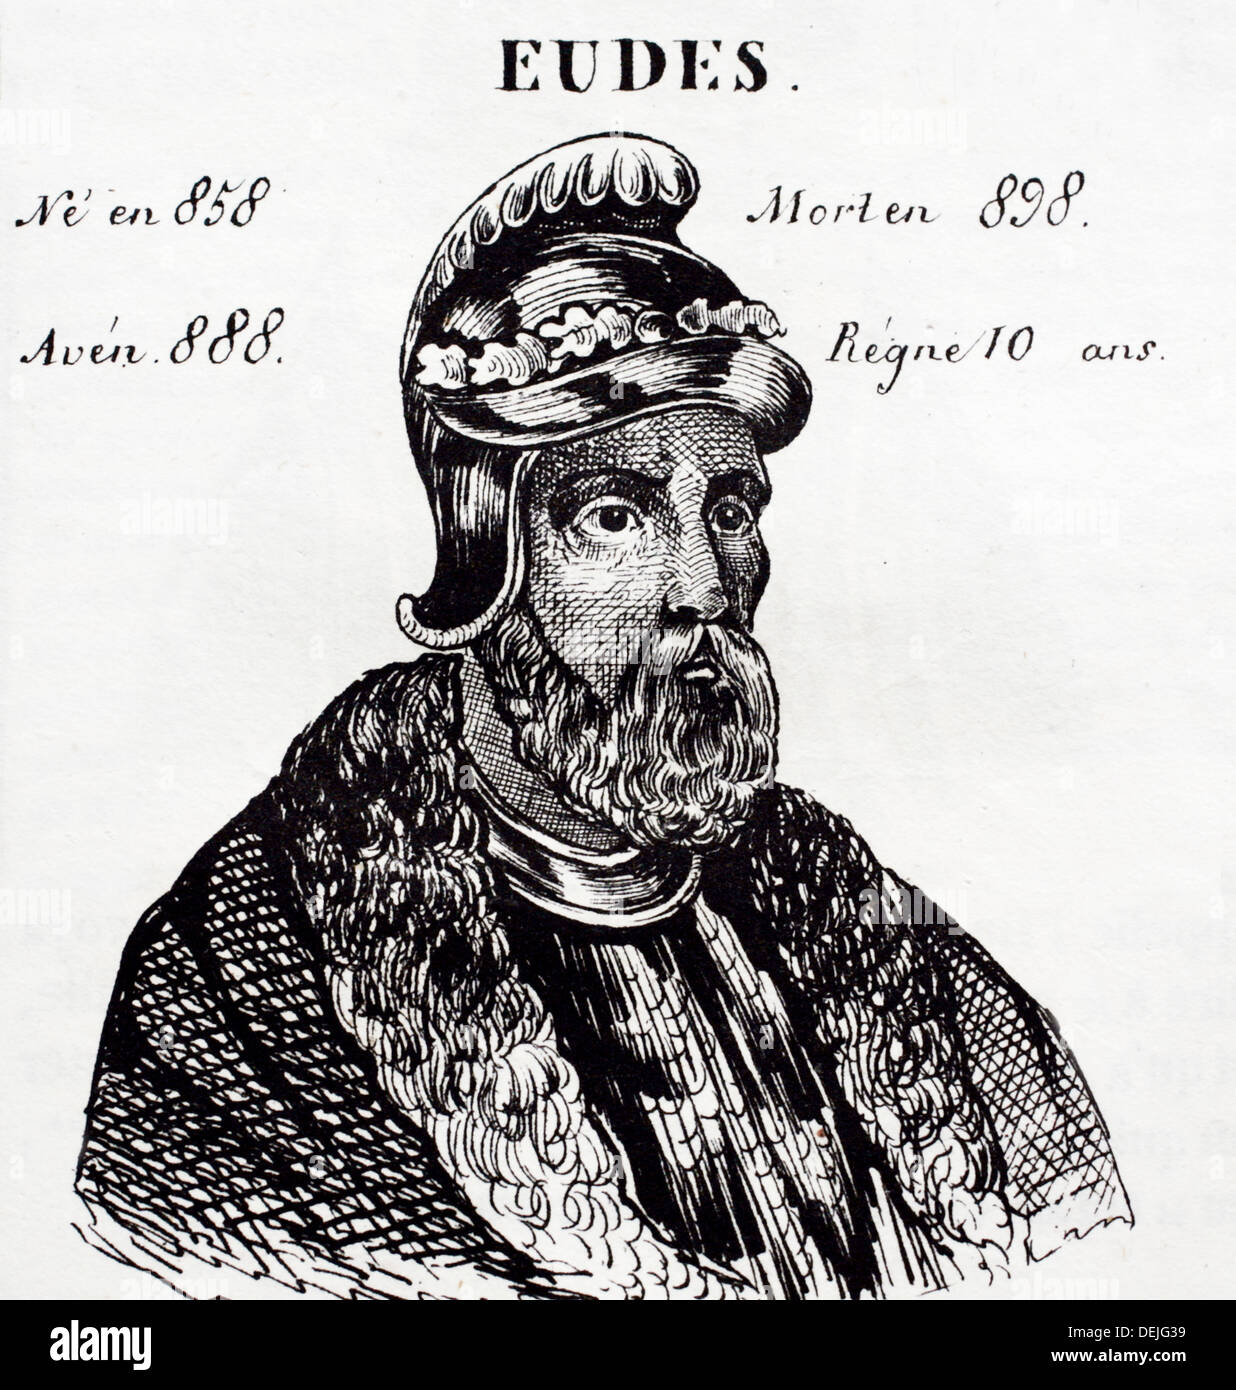 Eudes, king of France from 888 to 898. History of France, by  J.Henry (Paris, 1842) - Stock Image